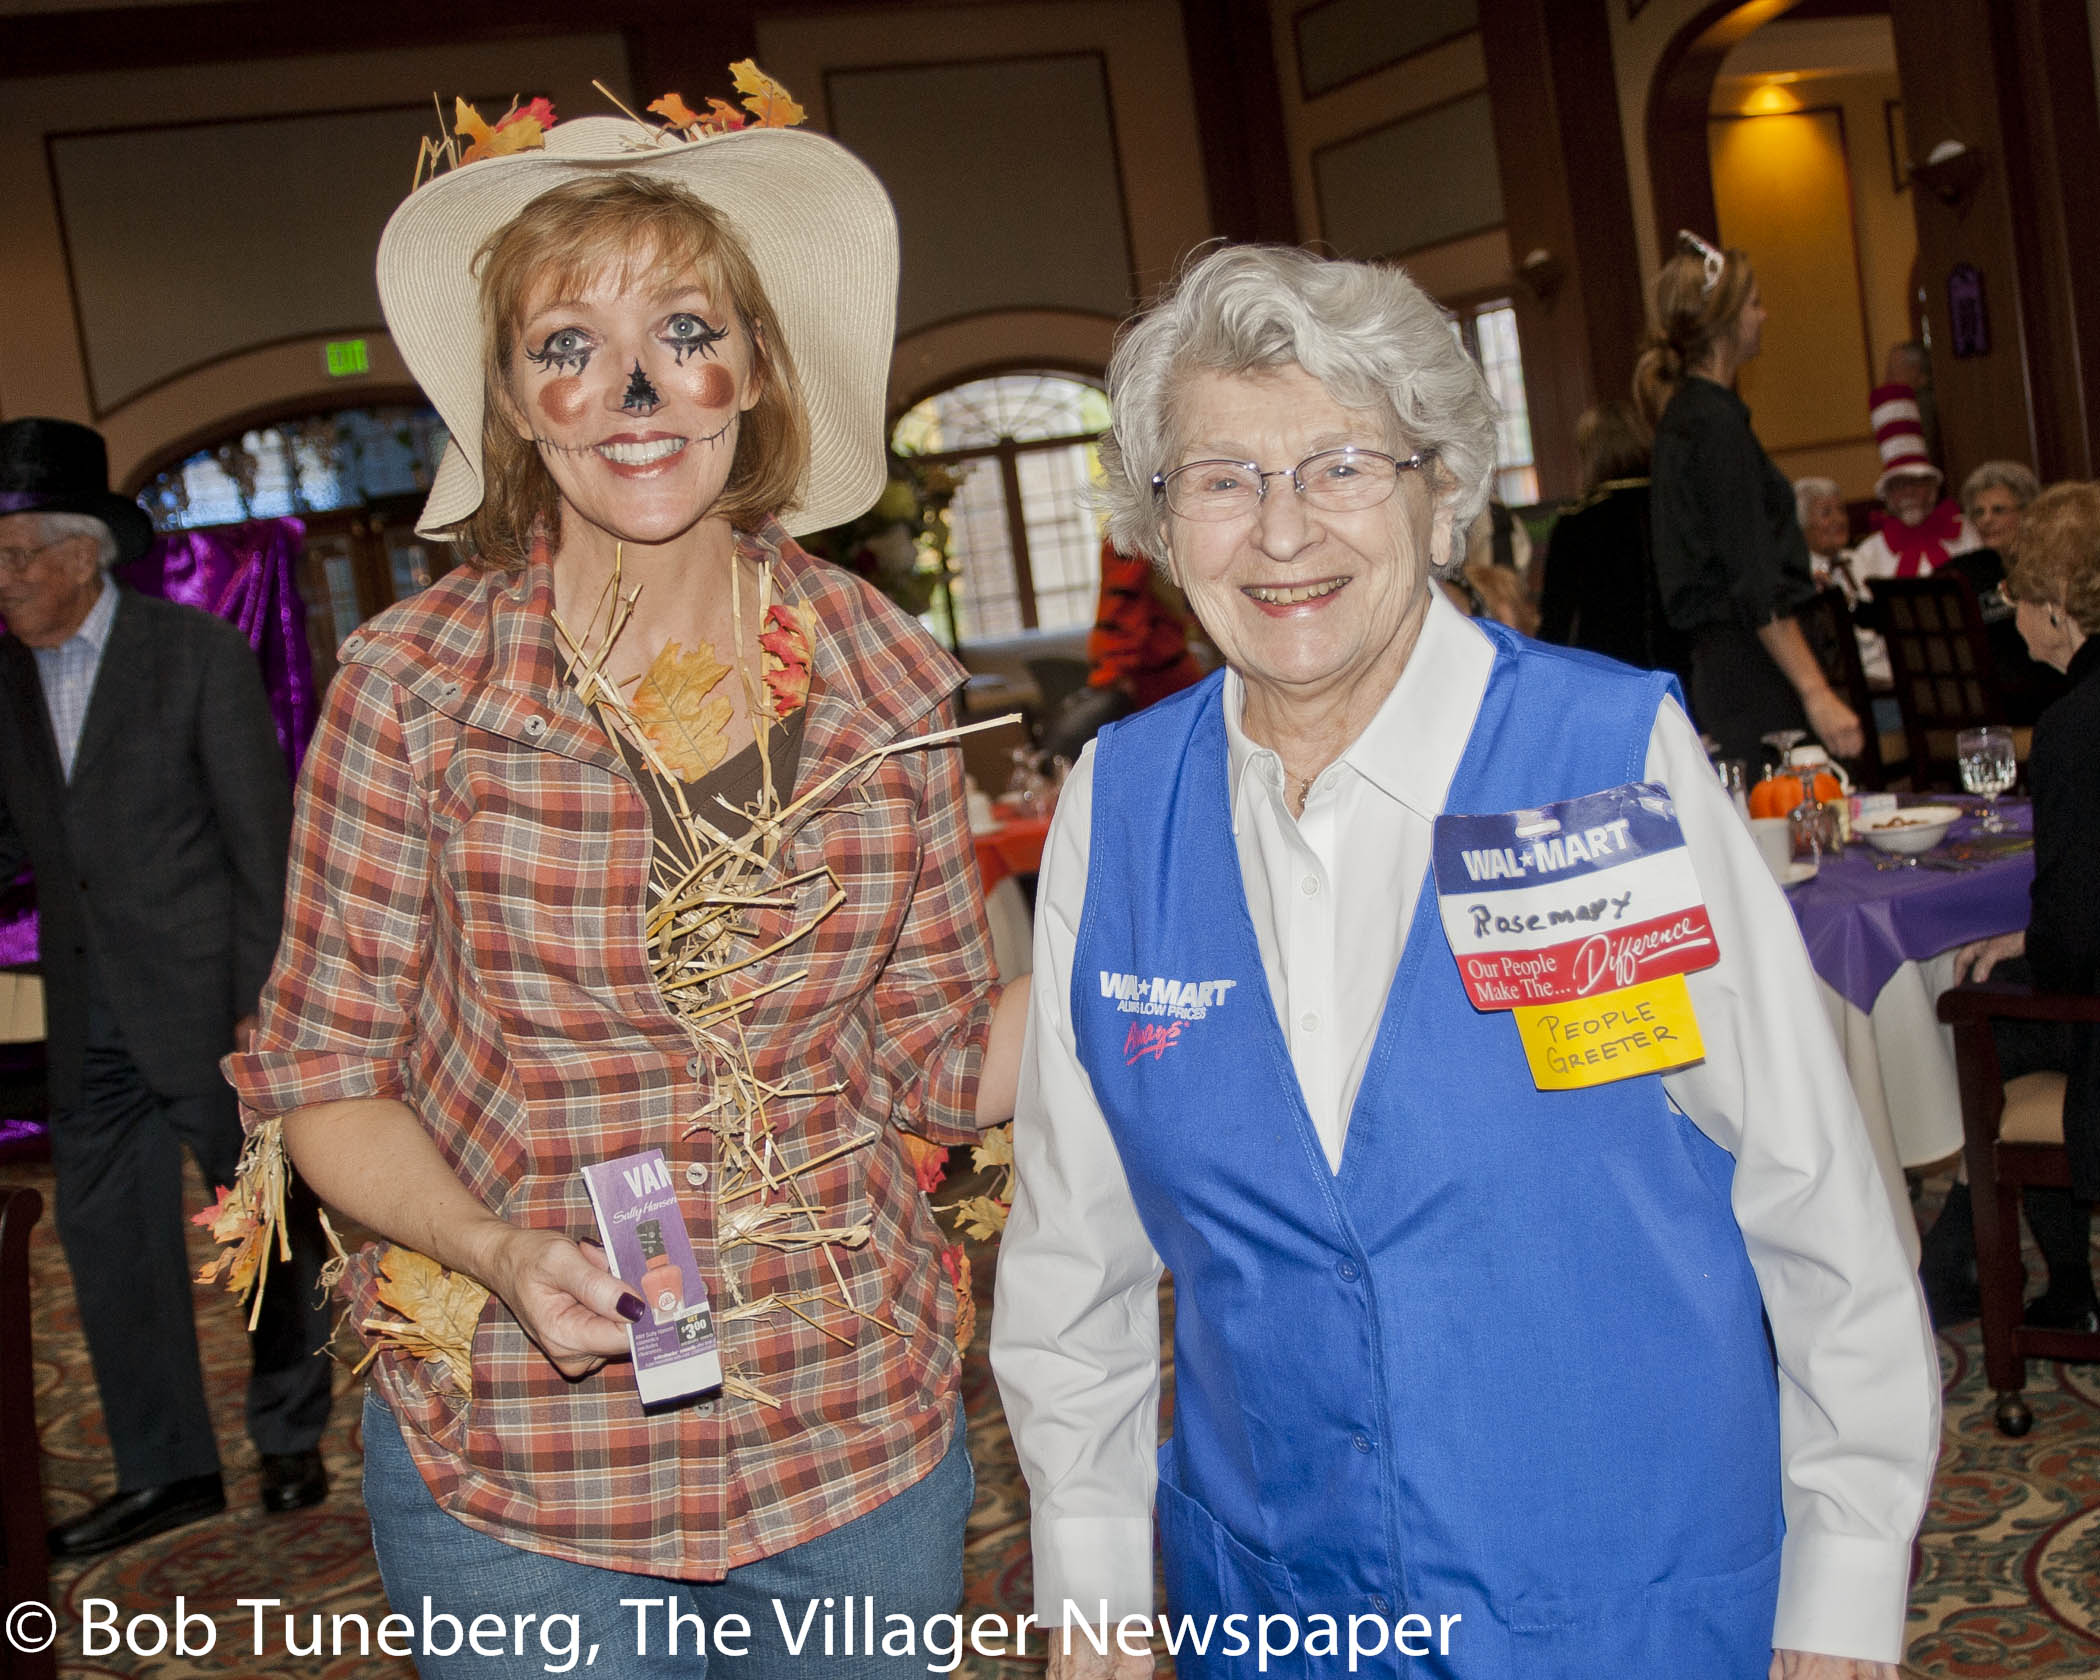 Off to see the Walmart Greeter.  sc 1 st  The Villager Newspaper & Costume Party at The Normandy Celebrates Residents | The Villager ...